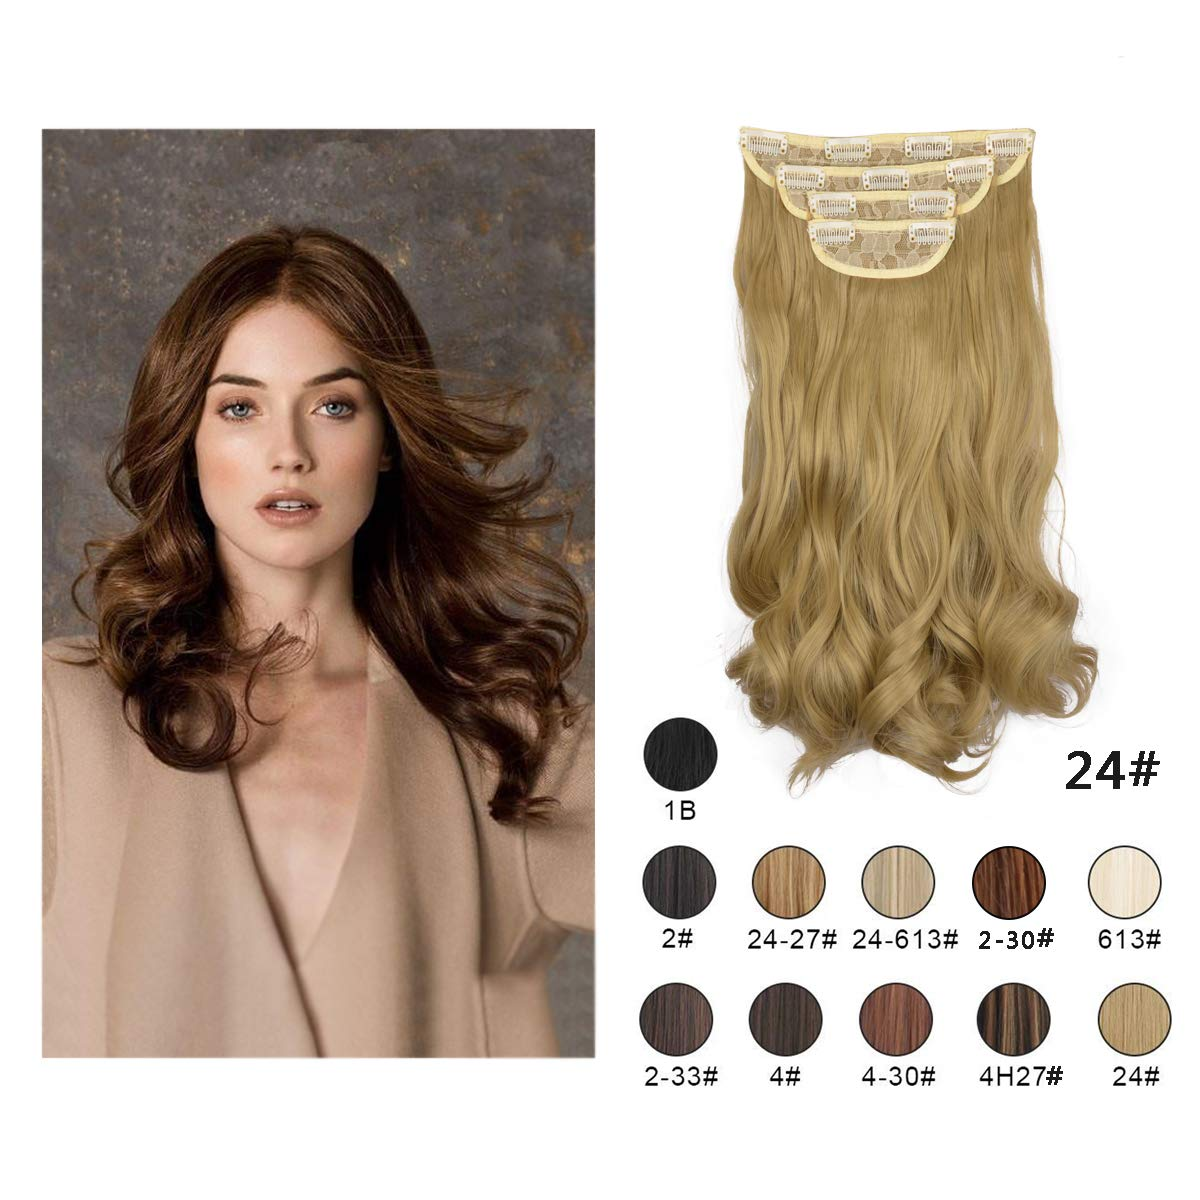 Barsdar 20'' Clips in Hair Extensions 4P11C Wavy Curly Hairpiece For Women lady Synthetic Heat Fiber Hair Extension (24#)